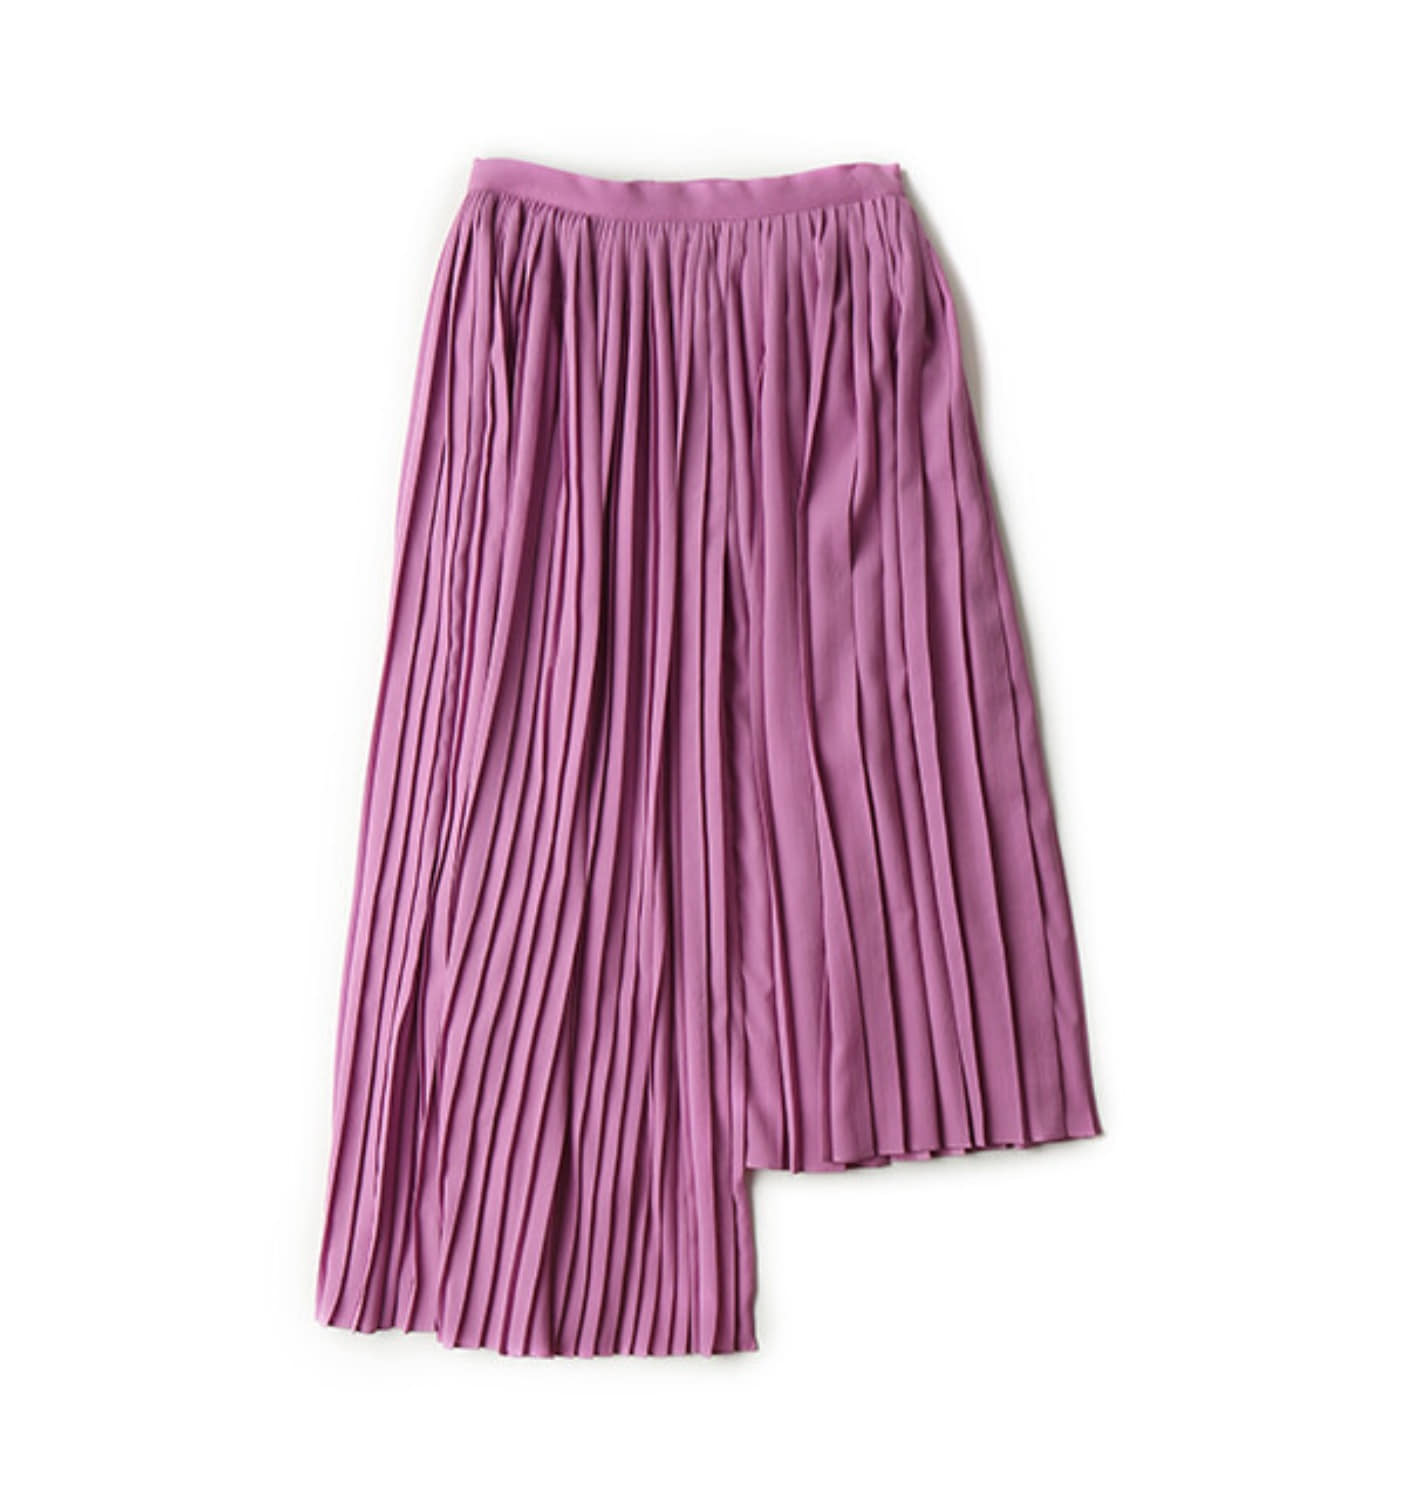 UNBALANCED PLEATED SKIRT_ LAVENDAR PINK